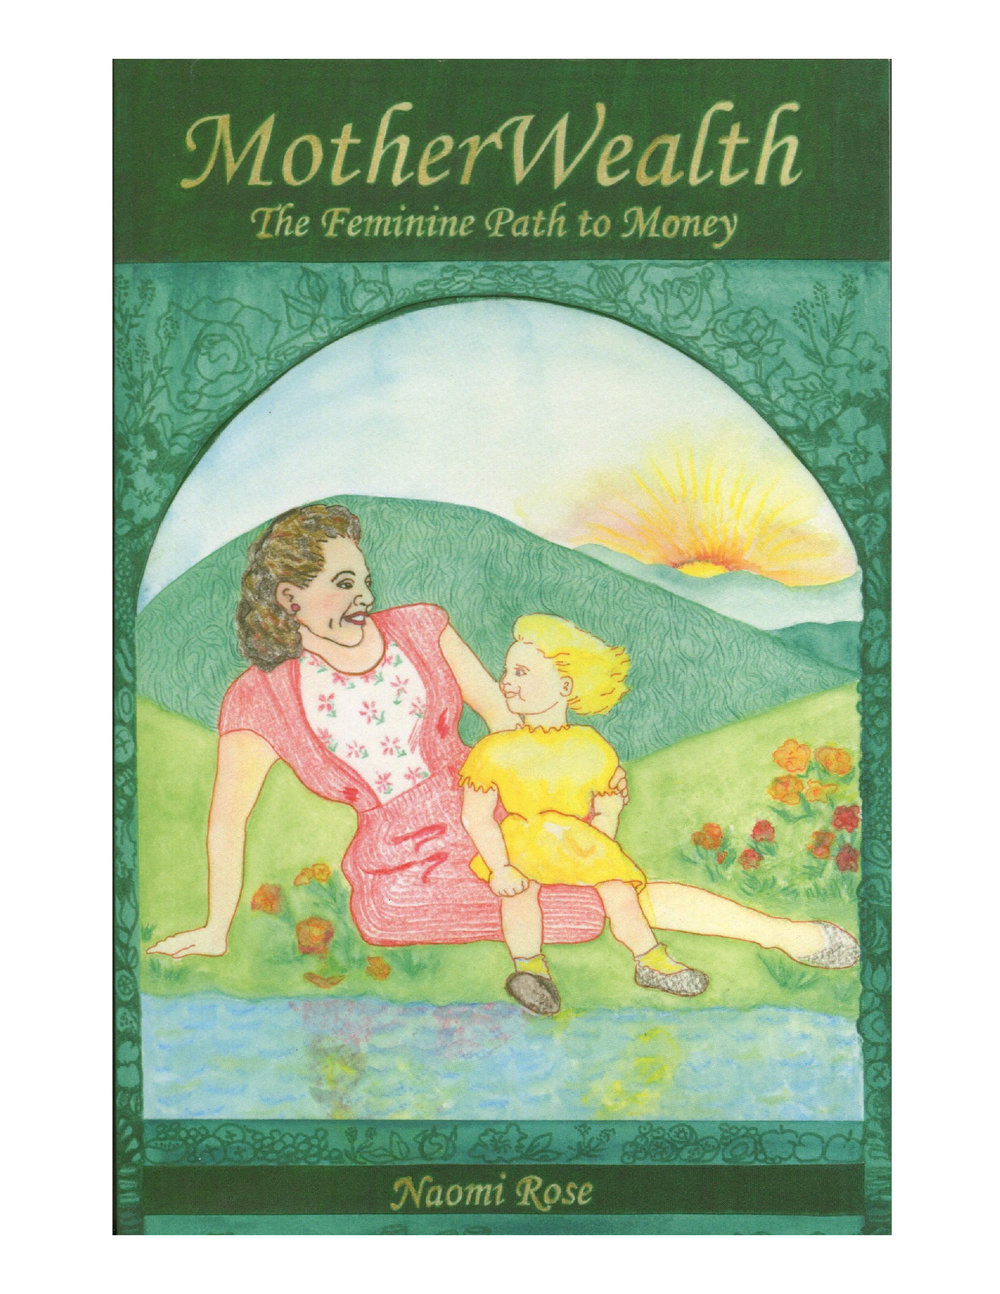 - MOTHERWEALTH: The Feminine Path to Money, by NAOMI ROSE.MotherWealth weaves a magical story of how the death of an old sense of self can bring an endless ocean of treasures from within — including money. This inside-out approach takes into account the inner life that holds the key to our fortunes, and offers a much-needed perspective on why the soulless model of money isn't working — and what will.